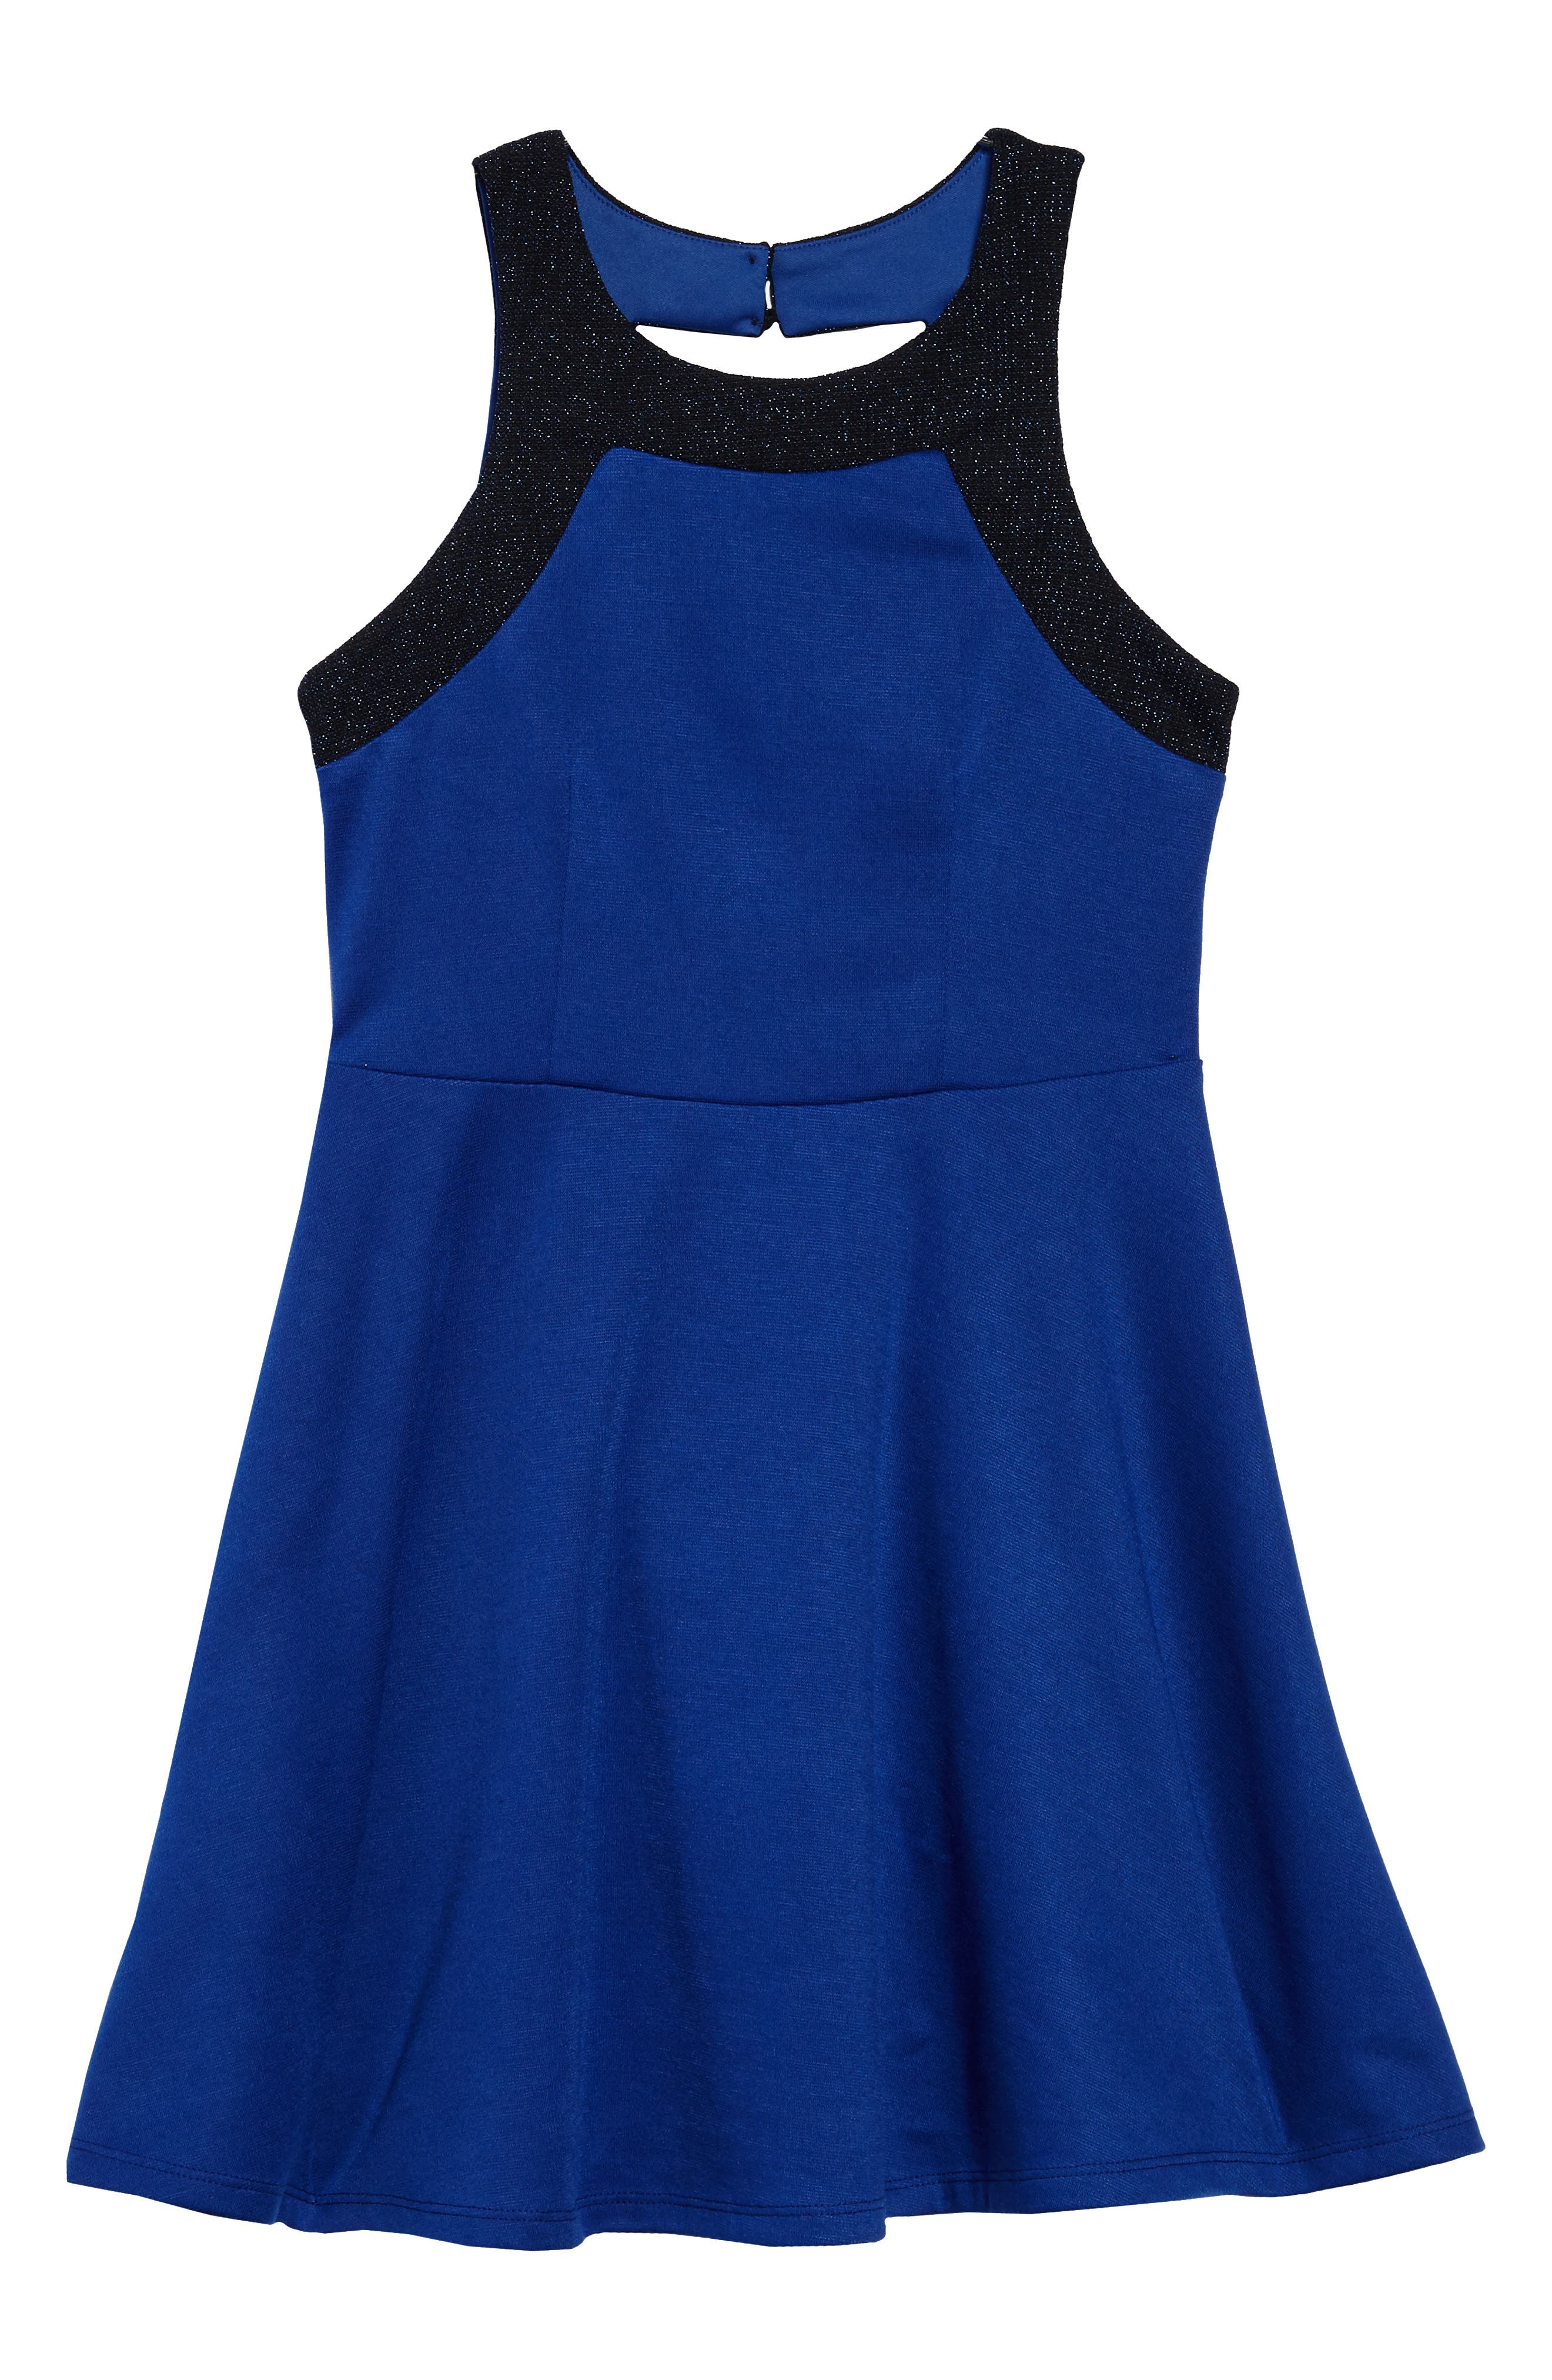 Heather Open Back Dress,                         Main,                         color, Royal